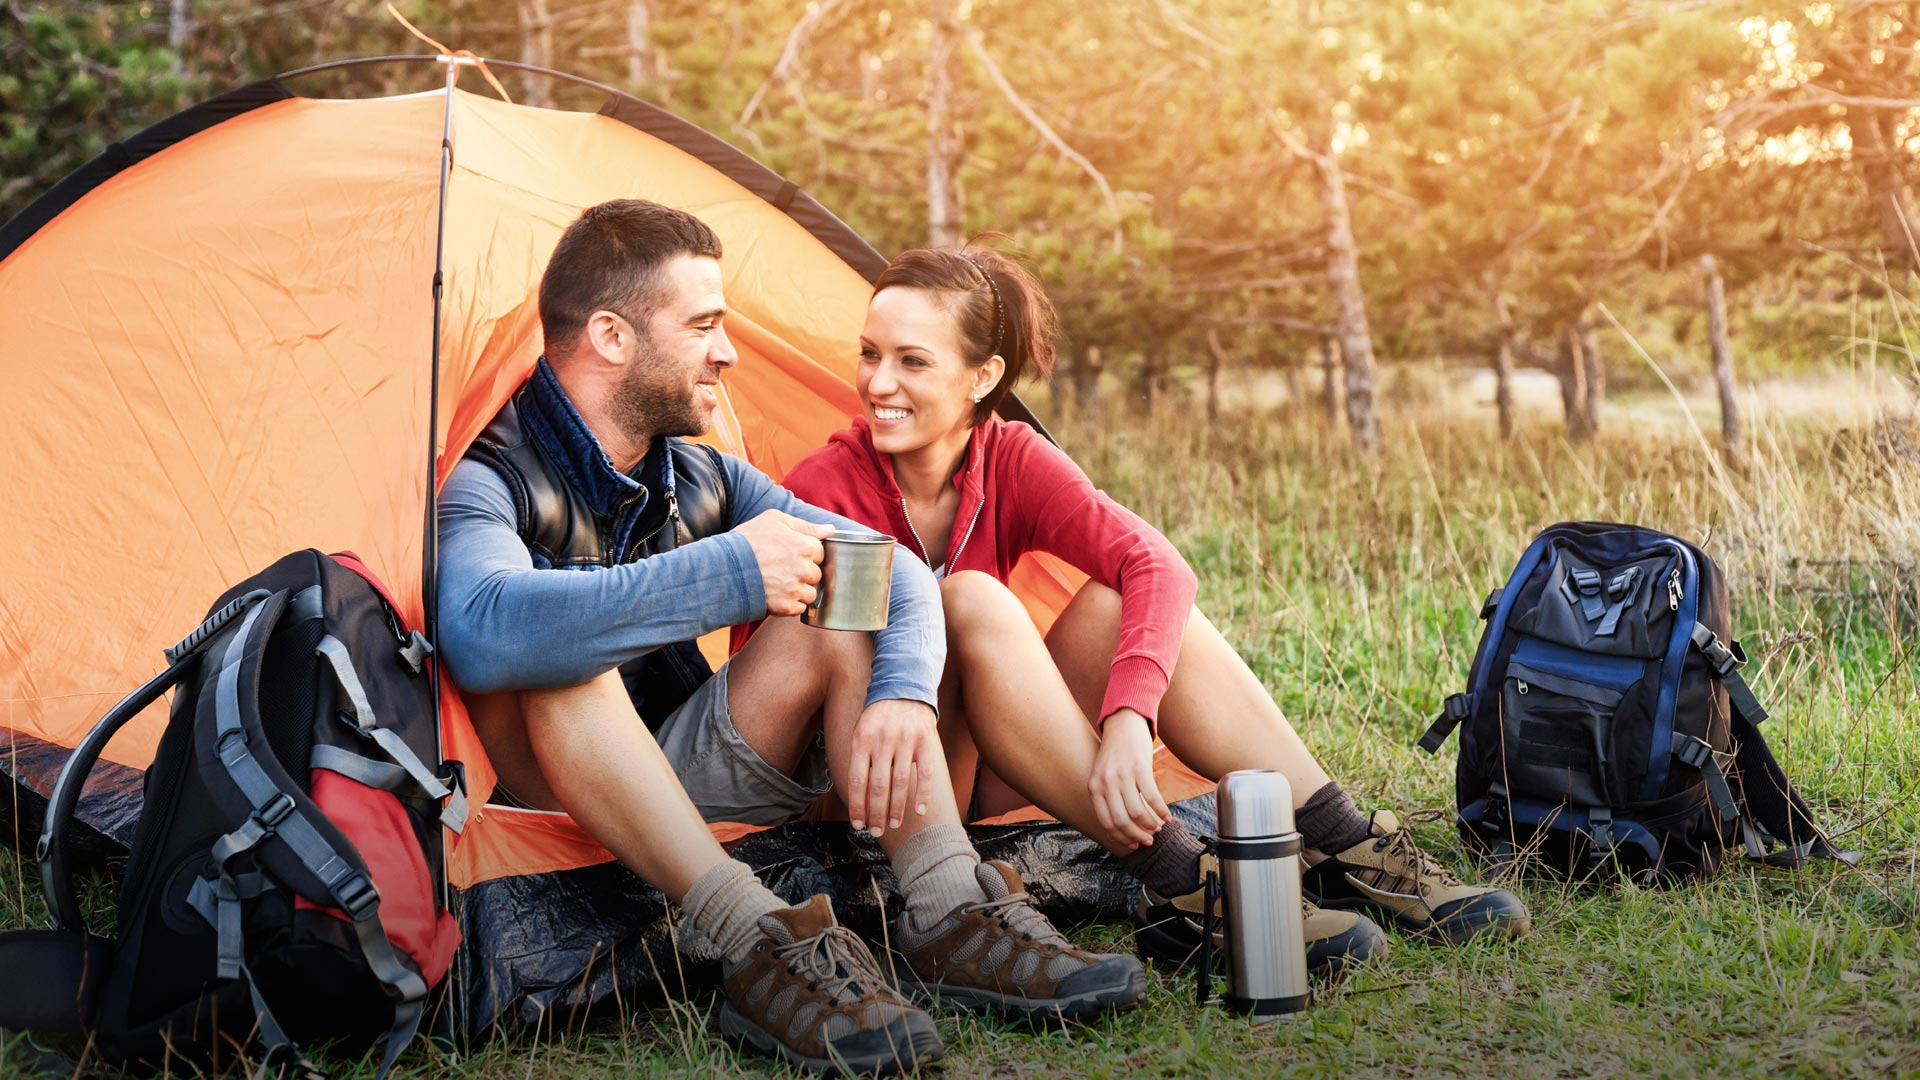 Urban Sherpa Travel - NY Outdoor Expo, Single-day trip and overnight options available